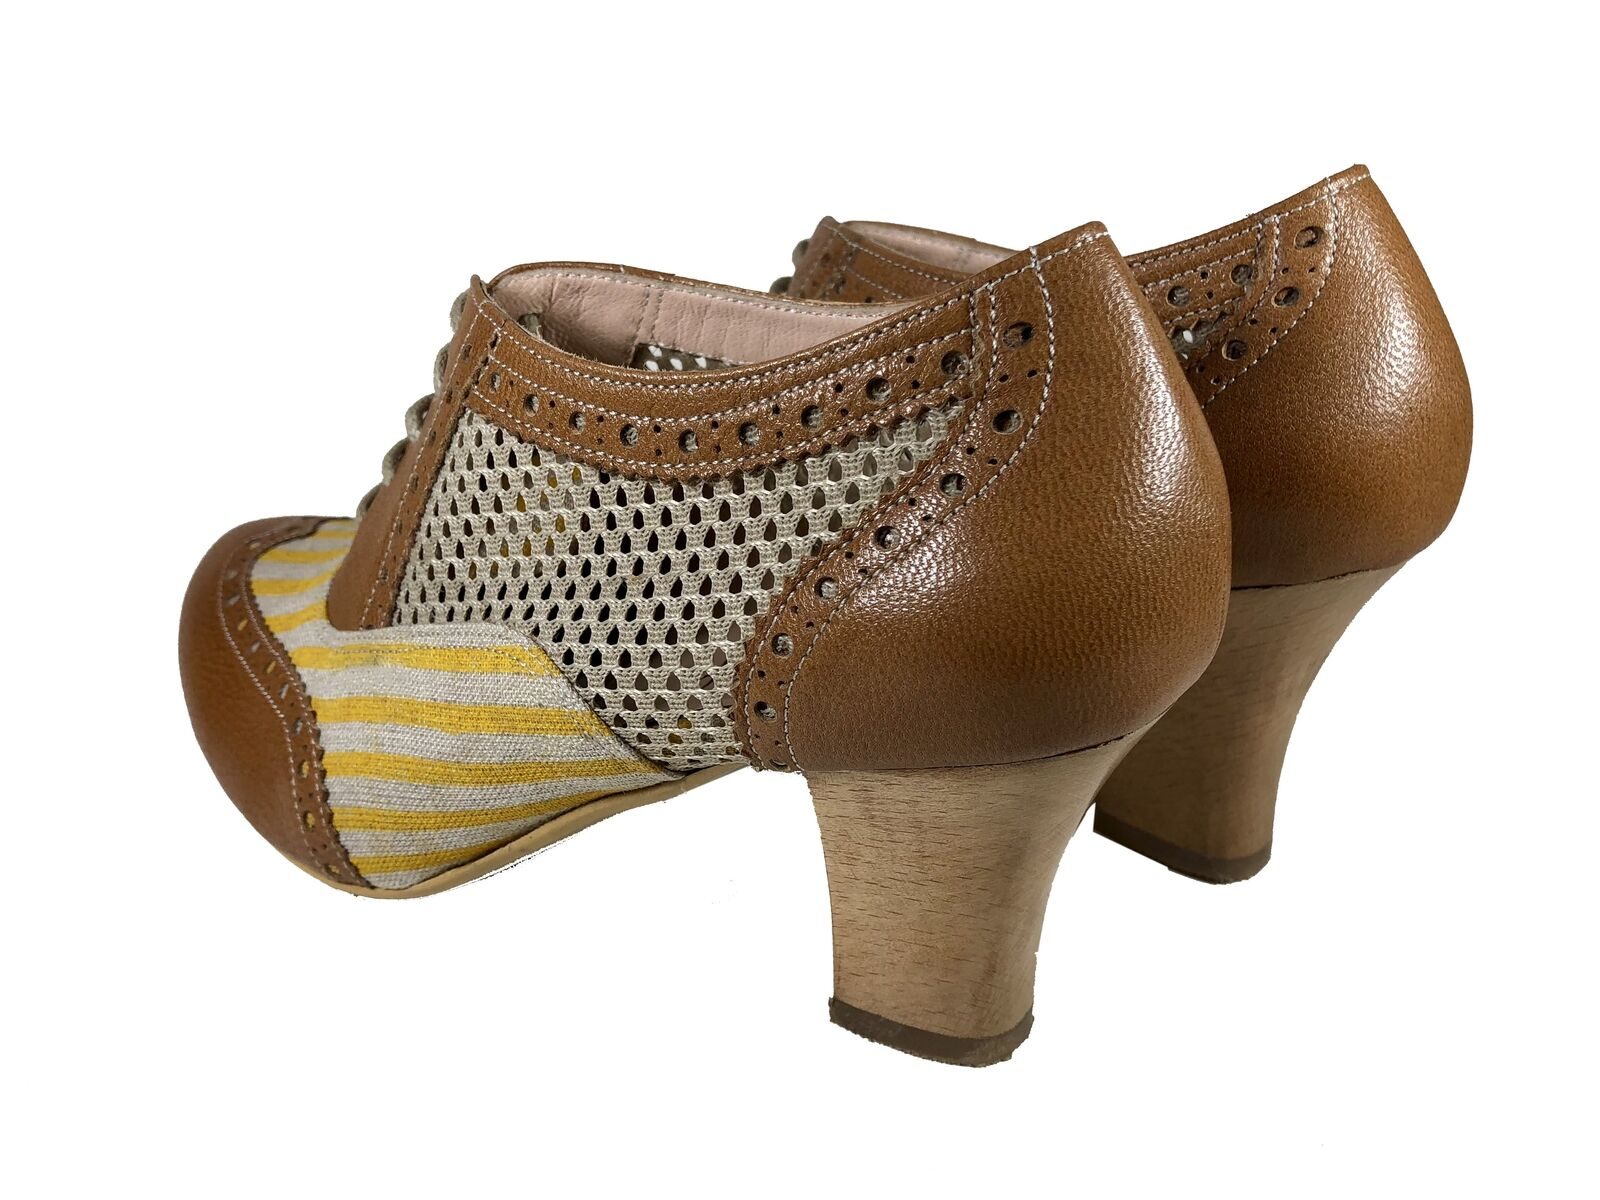 damen schuhe braun Leather Leather Leather Gelb Stripe Mesh Limited Collection Handmade New bd3785